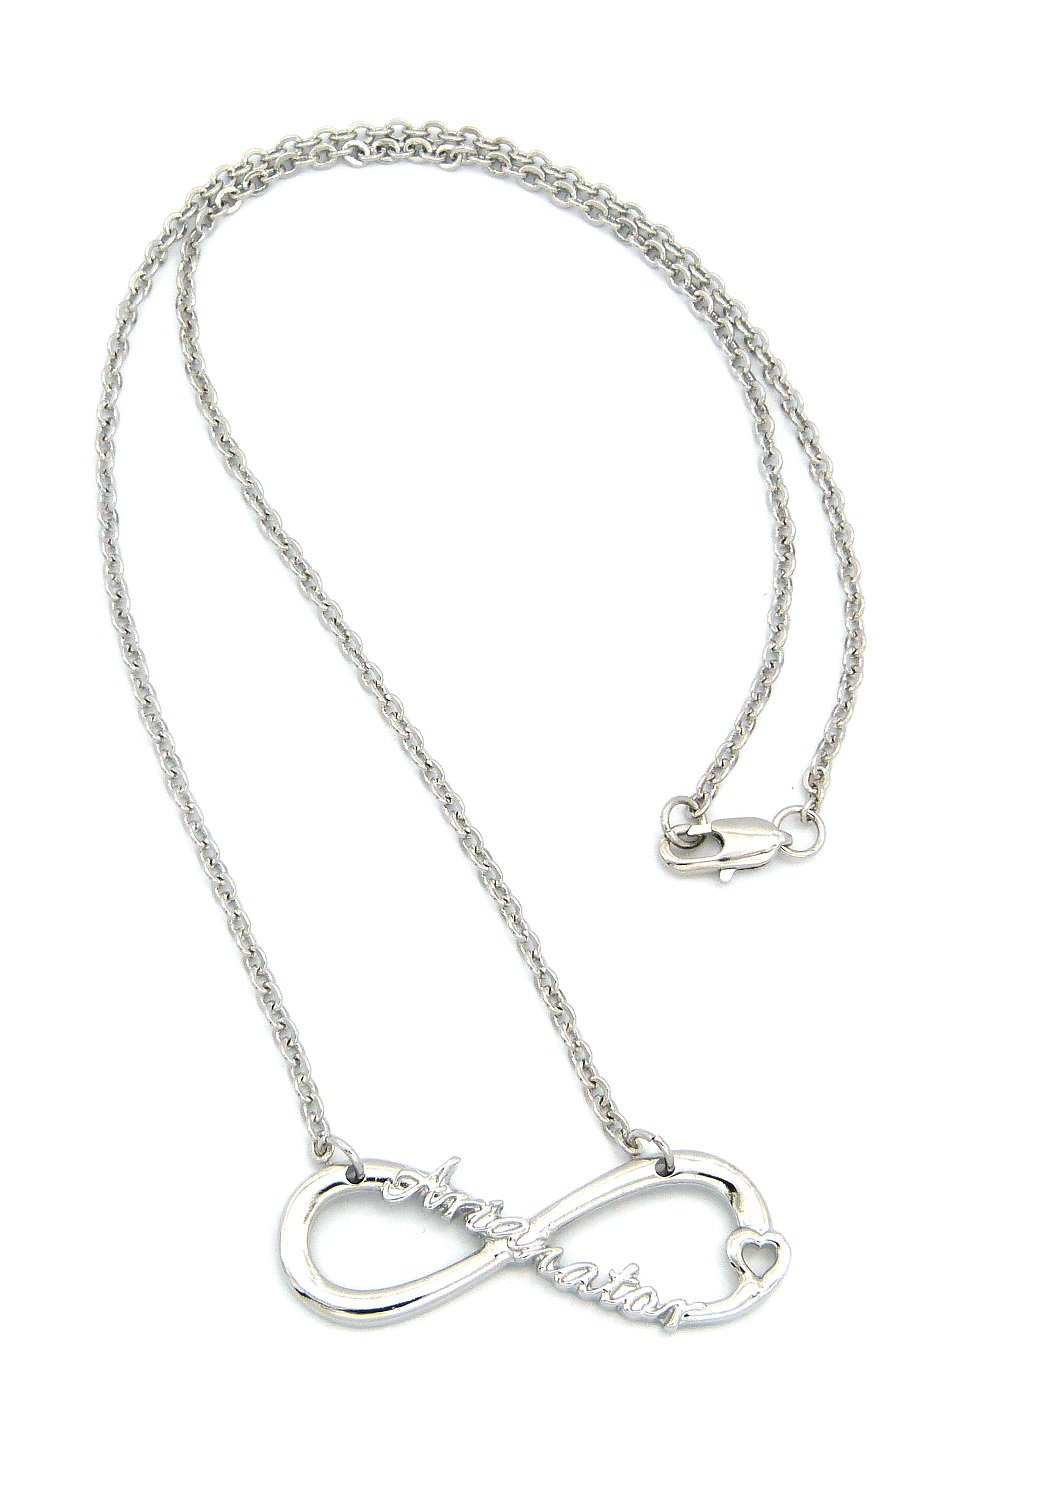 Arianator Fans Infinity Necklace in Silver Tone w/ 18 Link Chain XC472R